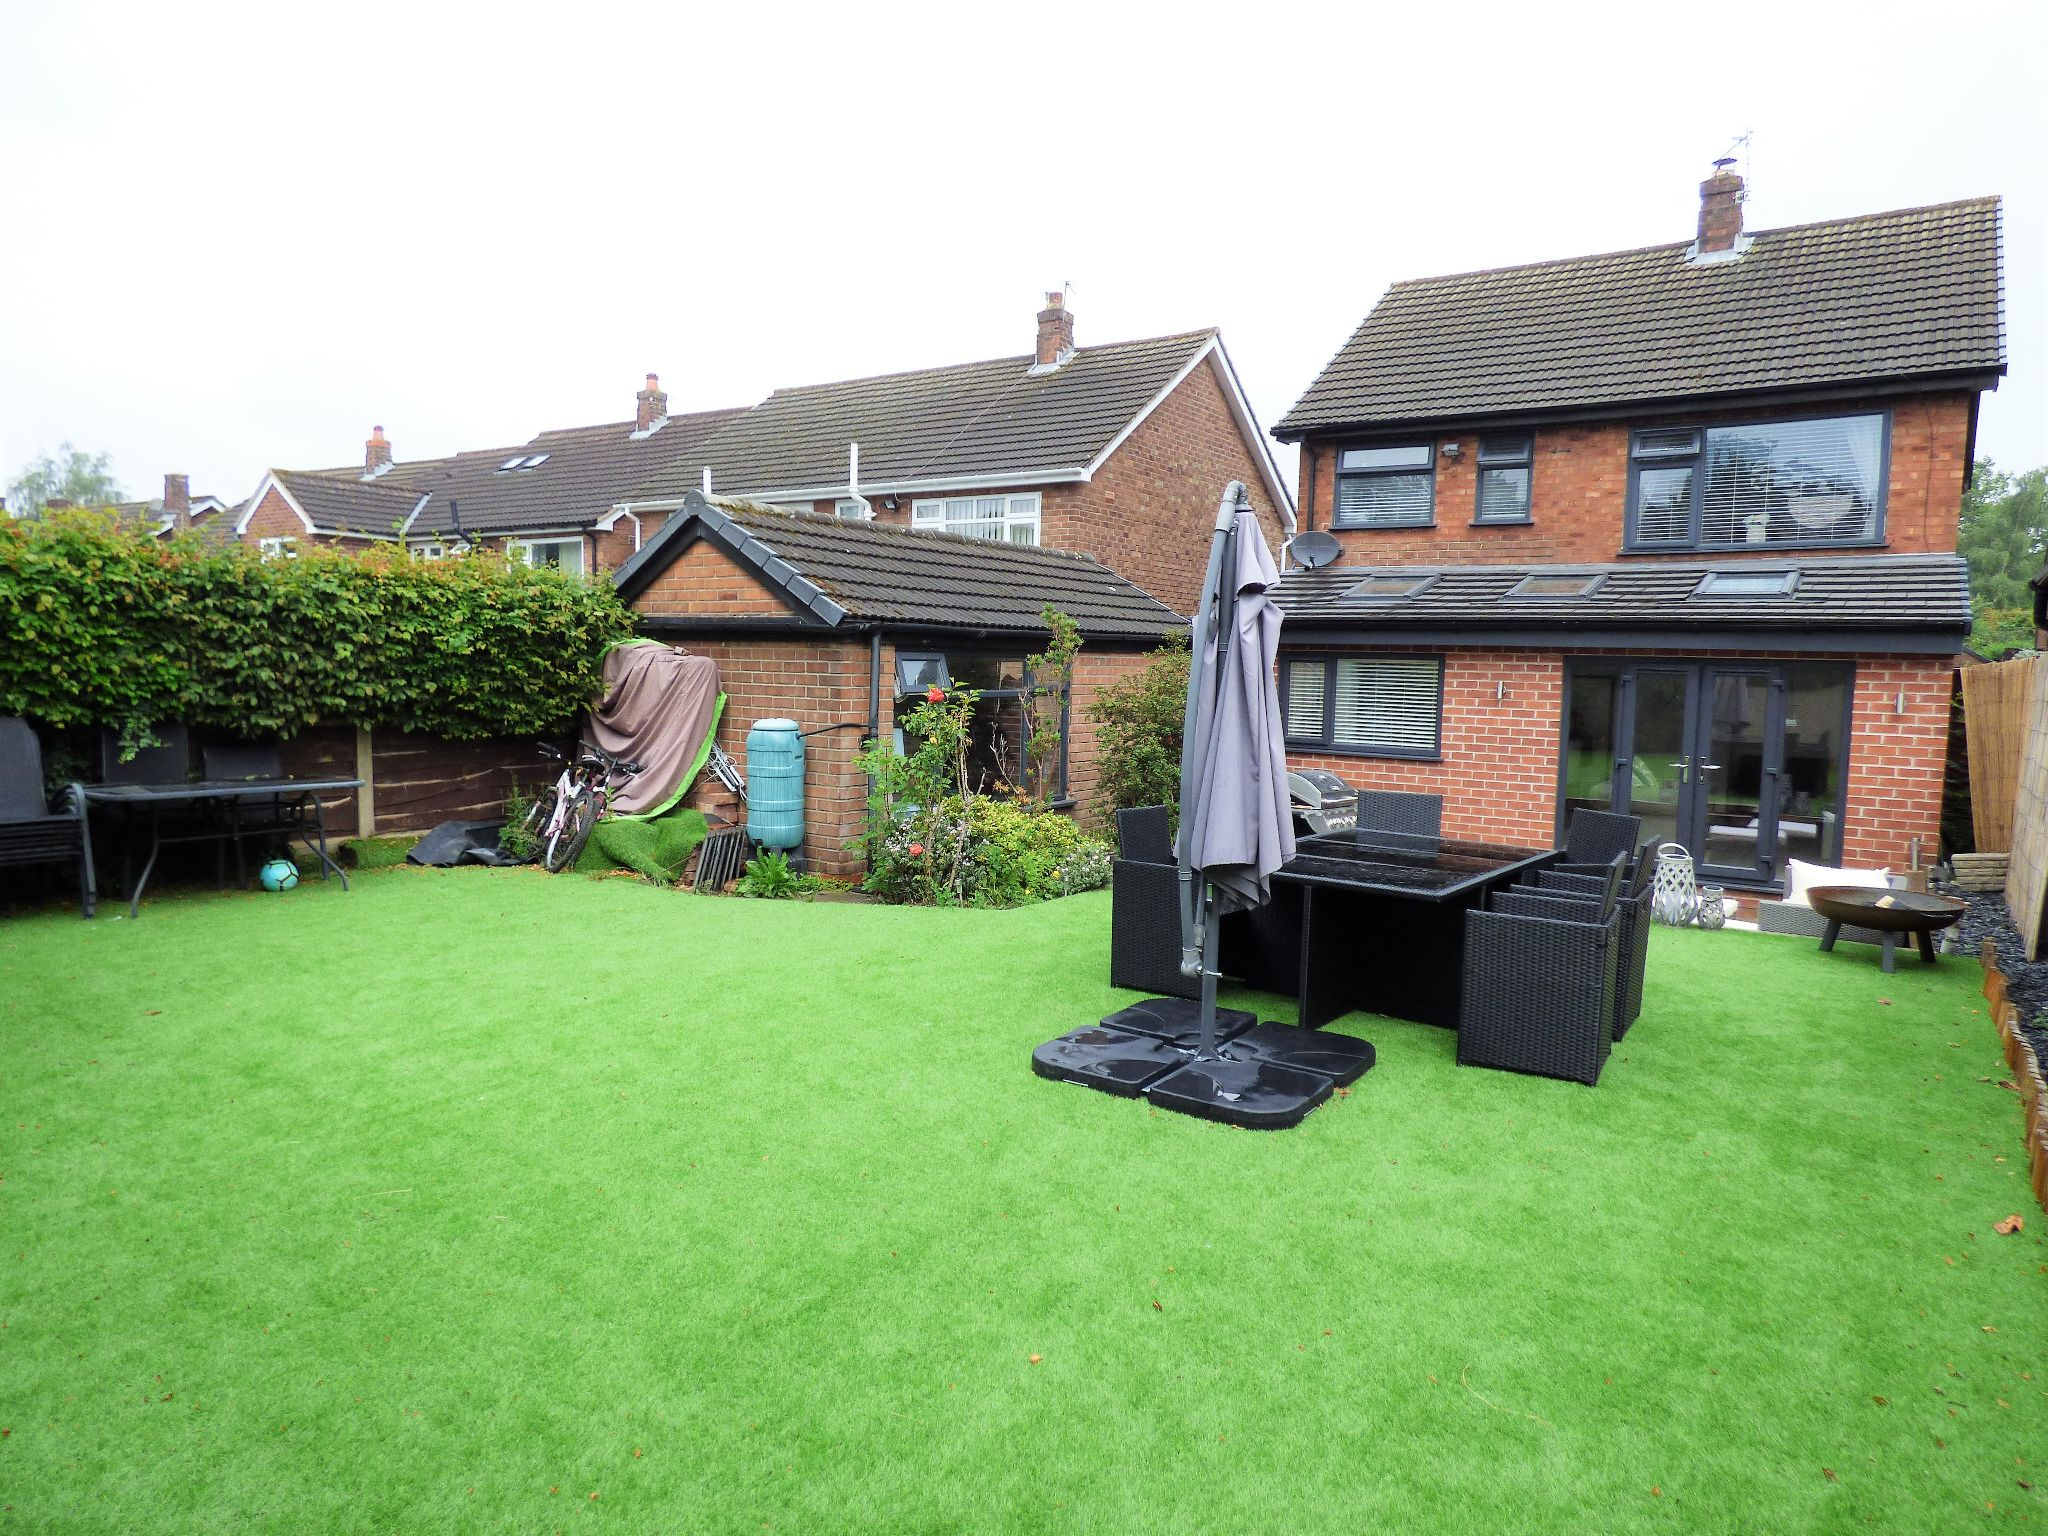 3 Bedroom Detached House For Sale - Photograph 16